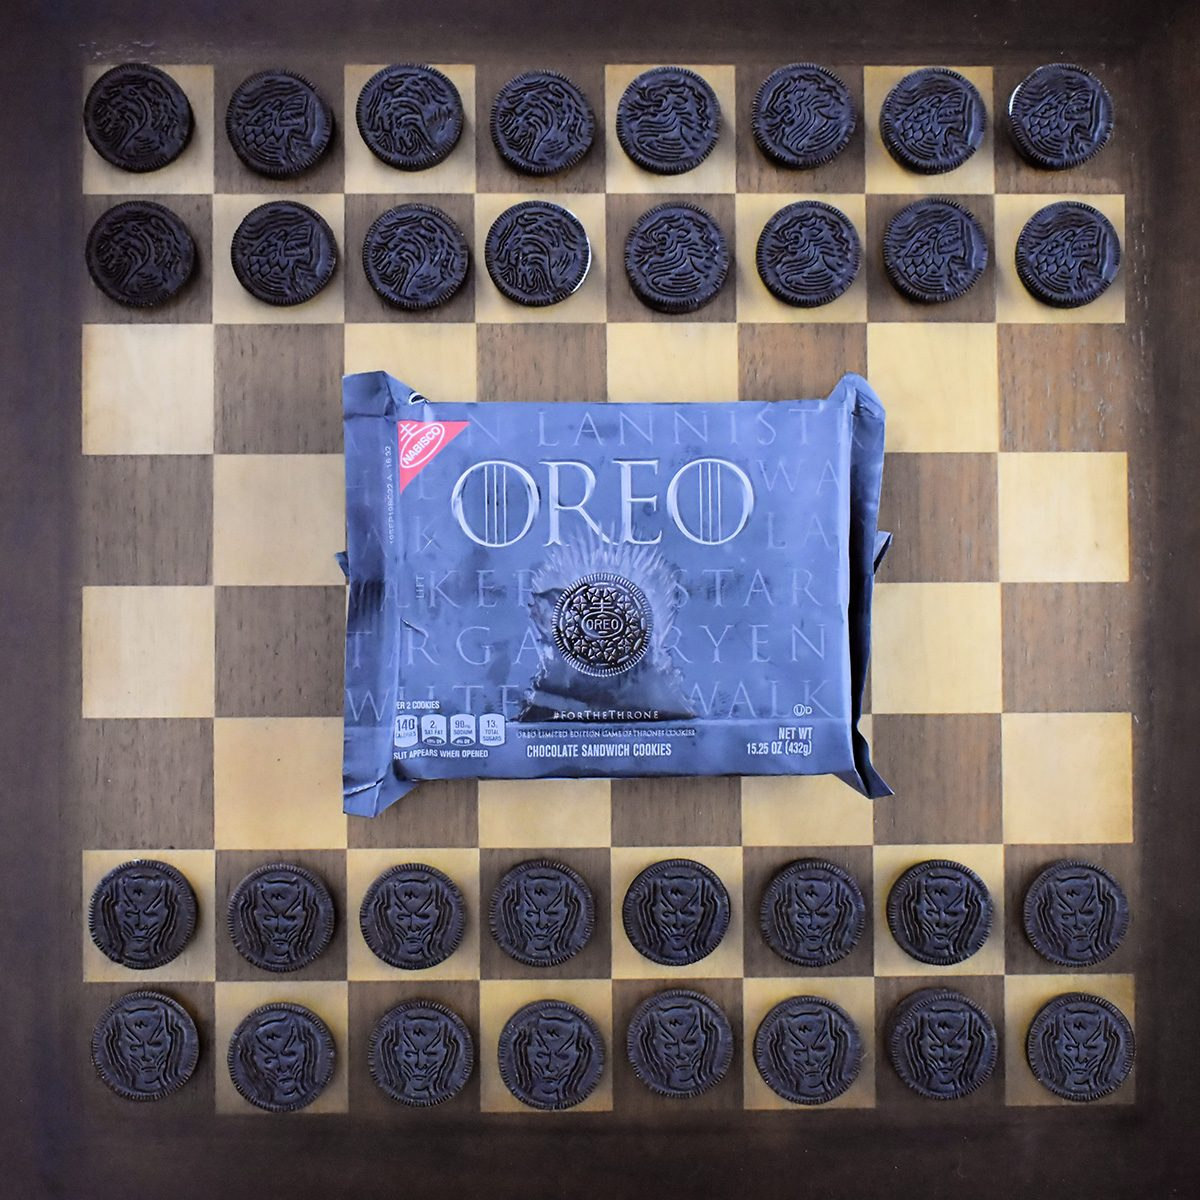 Limited edition Game of Thrones Oreo cookies.